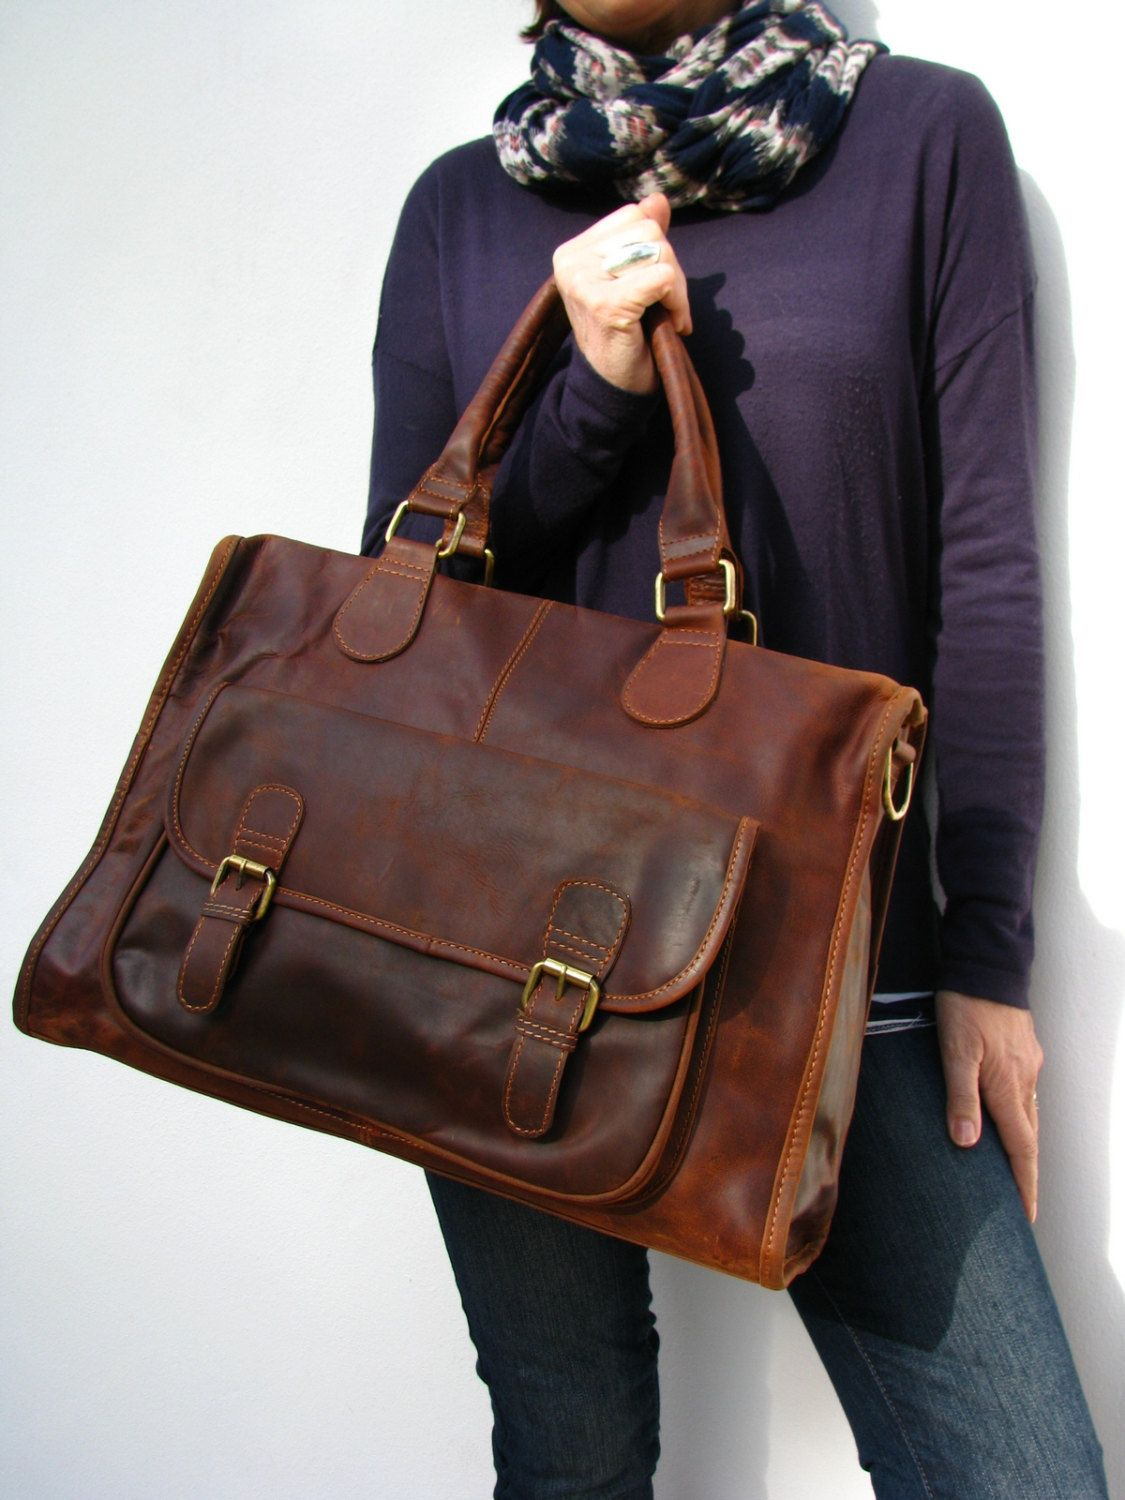 Leather Handbag Laptop Pocket Bag Vintage Look Brown 160 00 Via Etsy